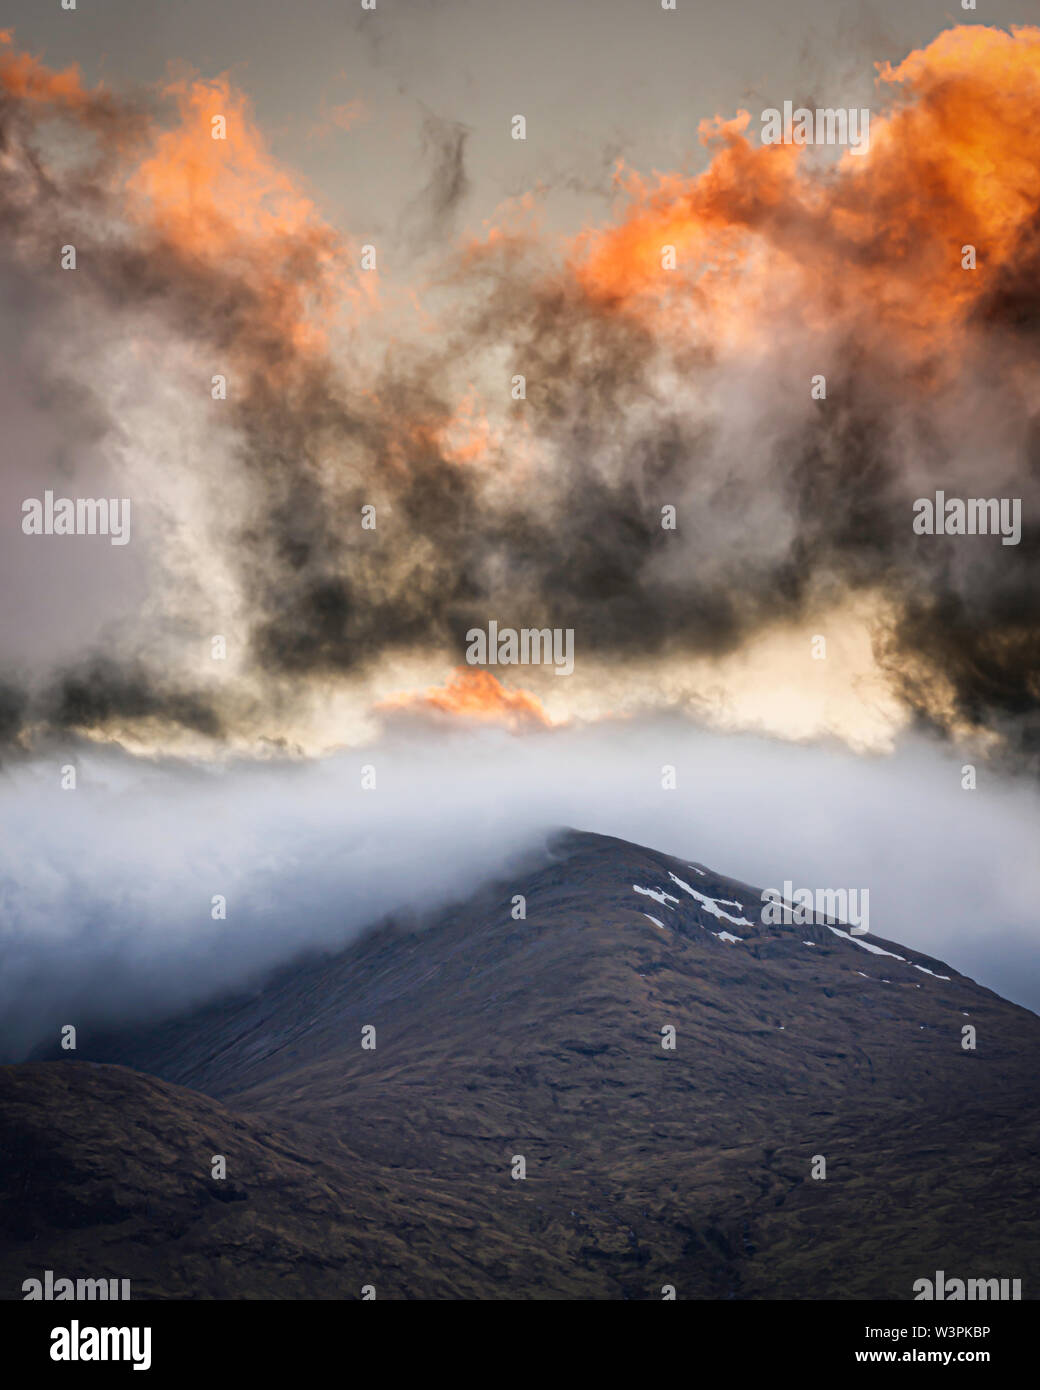 Setting sun light up the clouds over mountain peak in Scottish Highlands.Beautiful sunset scene with colourful and dramatic sky. - Stock Image